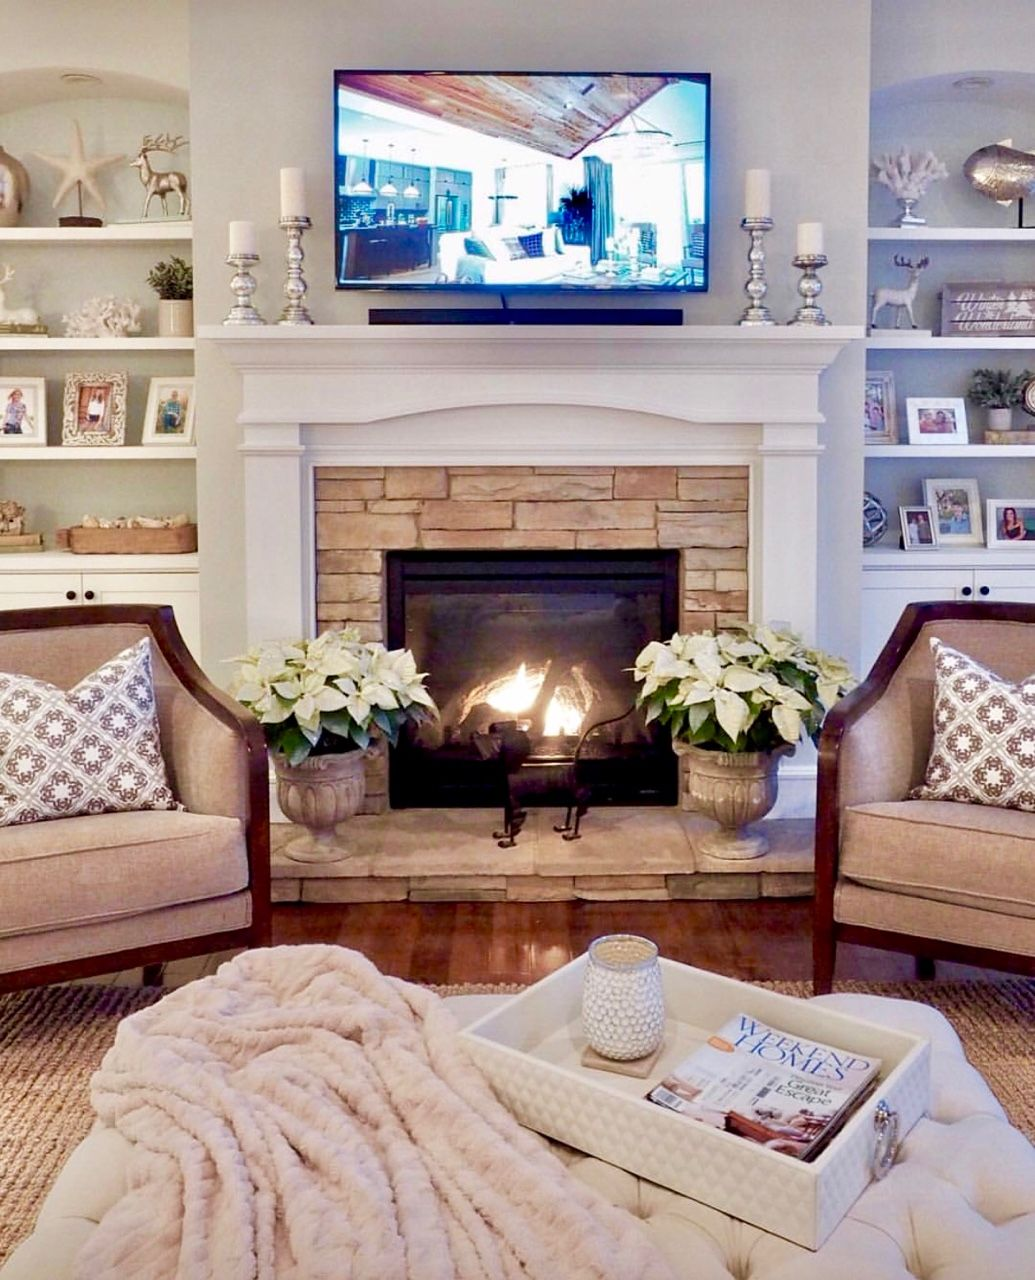 Cozy Living Room With Fireplace darling, let's be adventurers | cozy | pinterest | living rooms